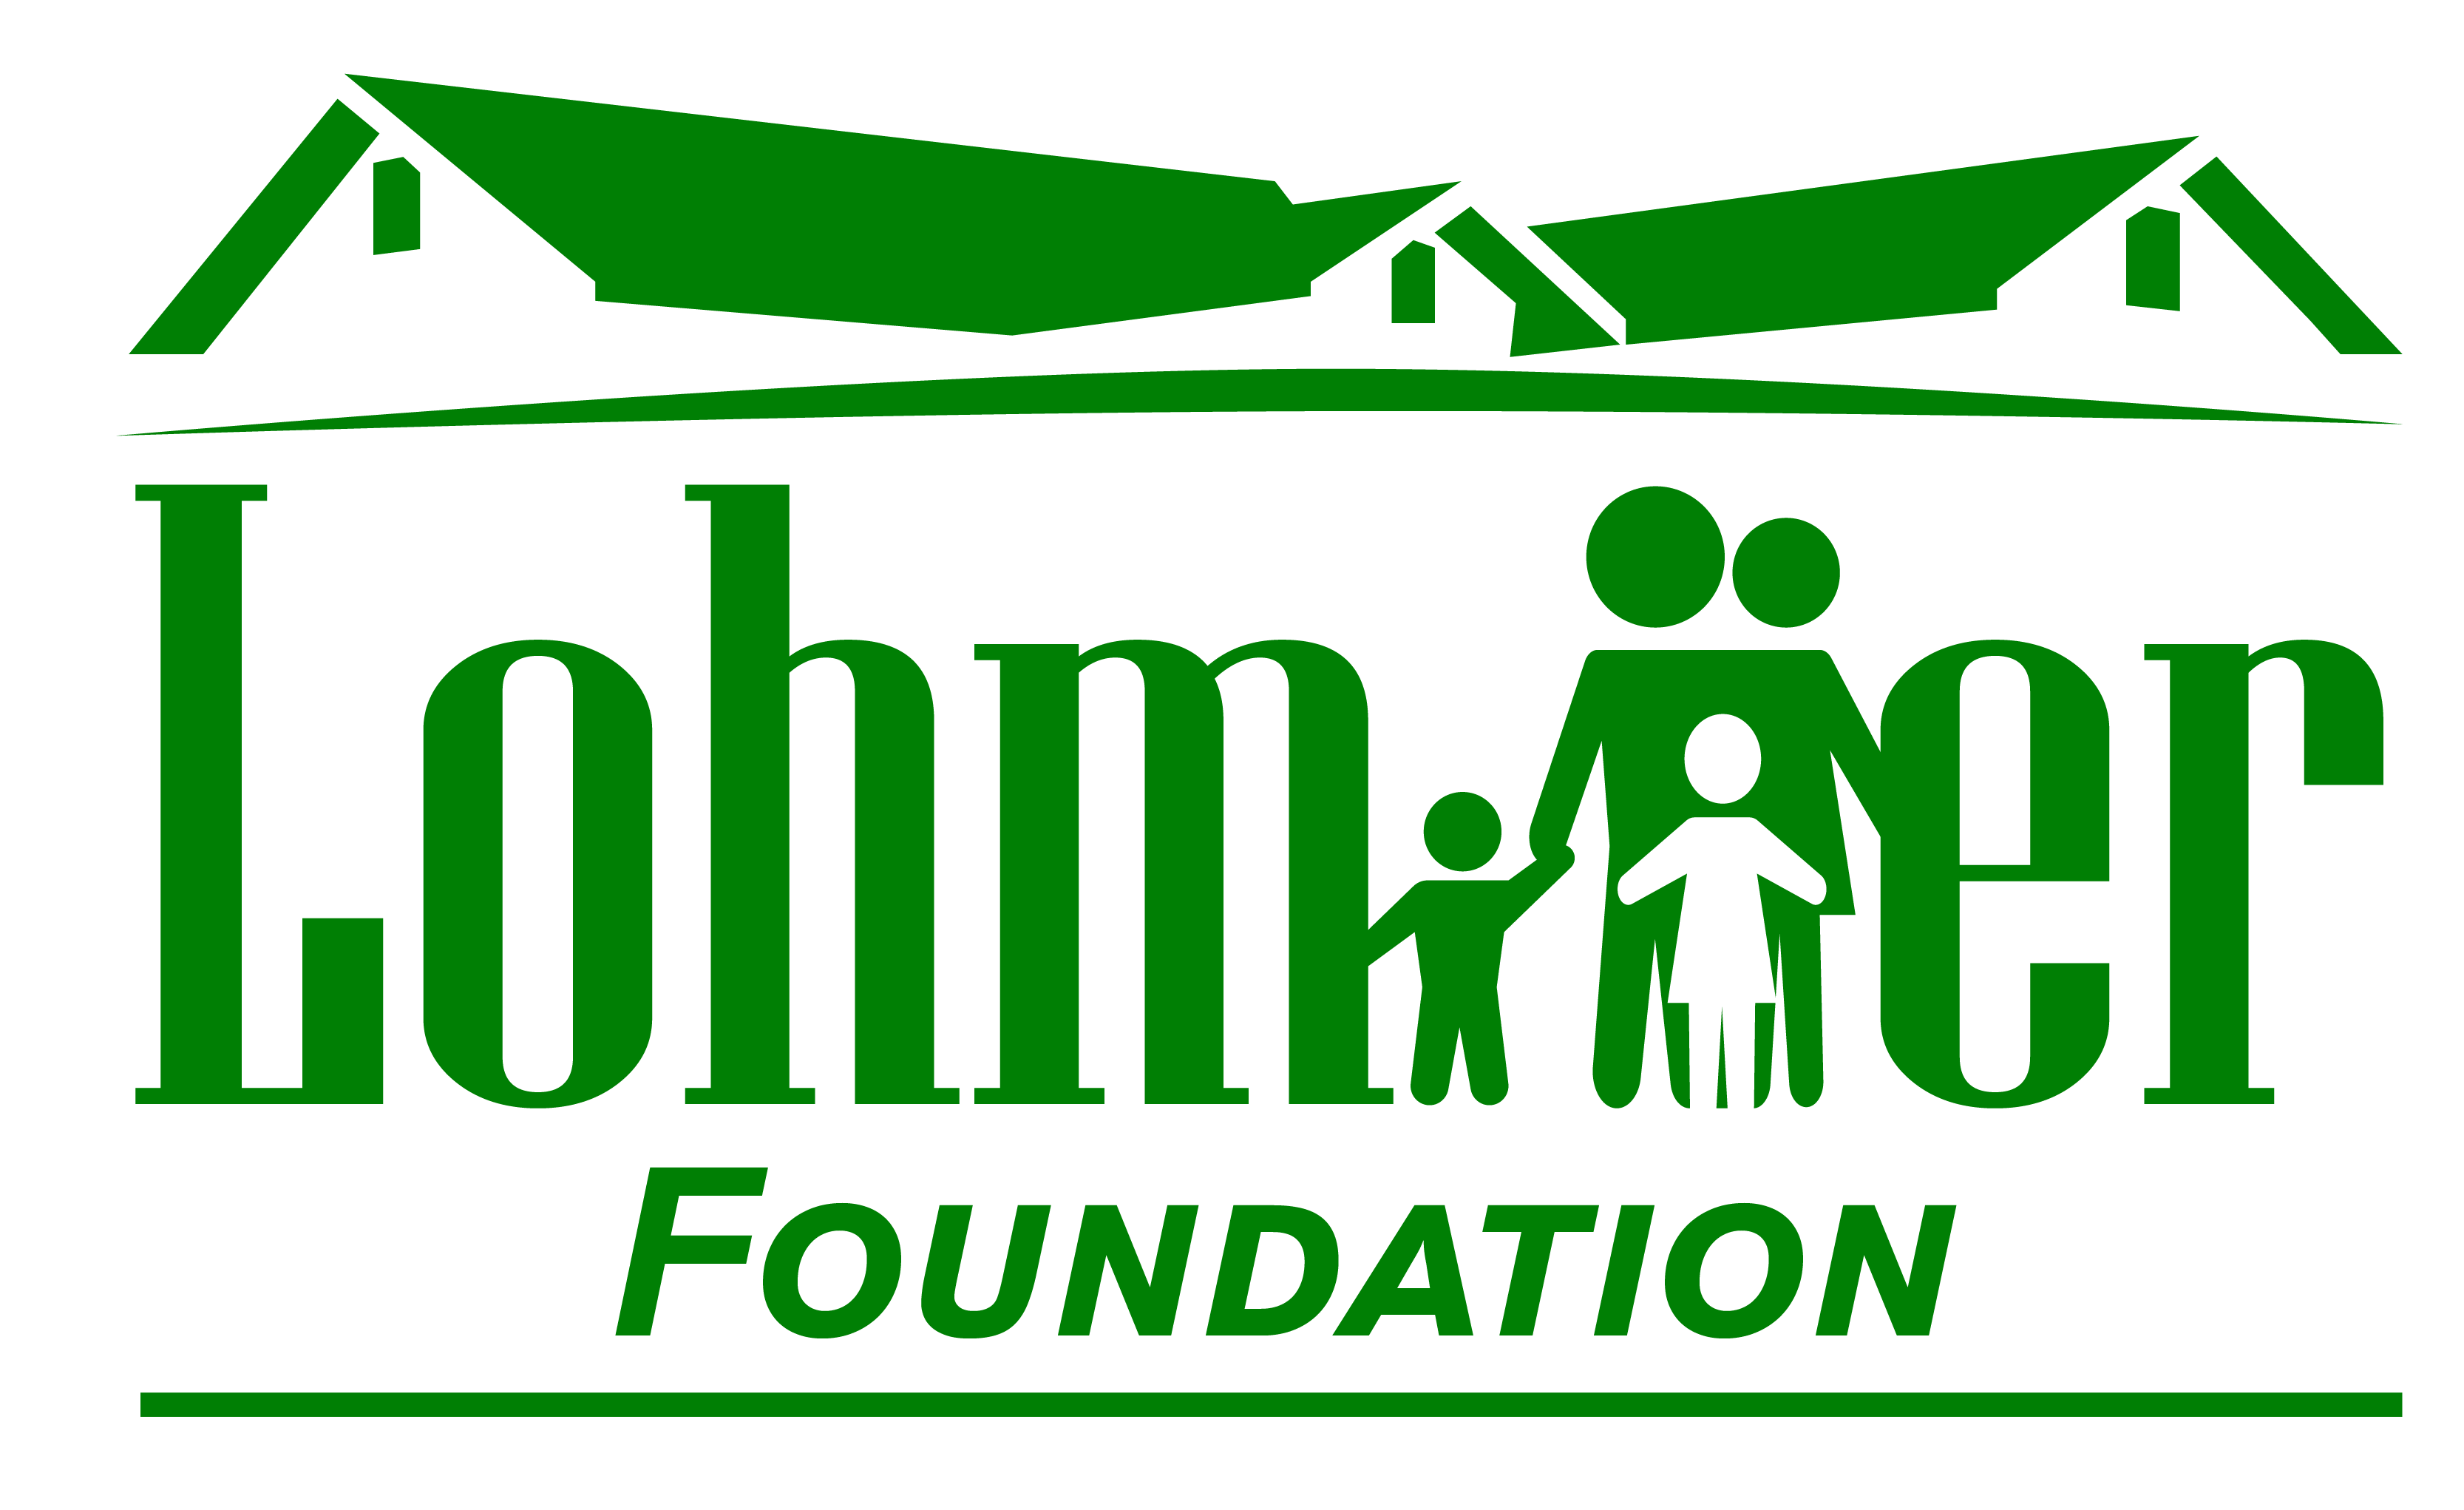 The Lohmiller Foundation